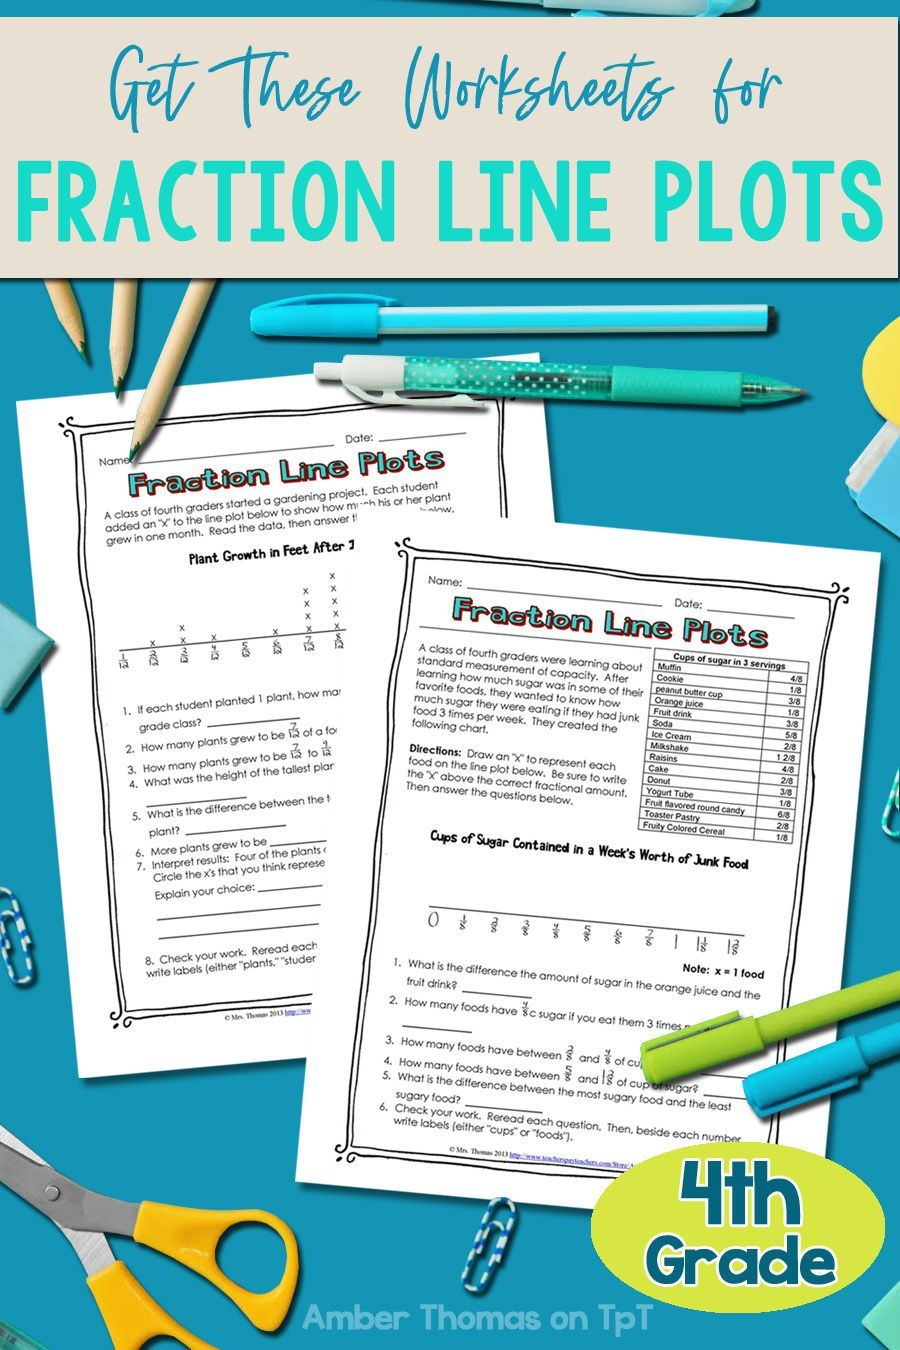 Fraction Line Plot Worksheets In 2020 Elementary Math Lessons Line Plot Worksheets Elementary Teaching Resources [ 1350 x 900 Pixel ]